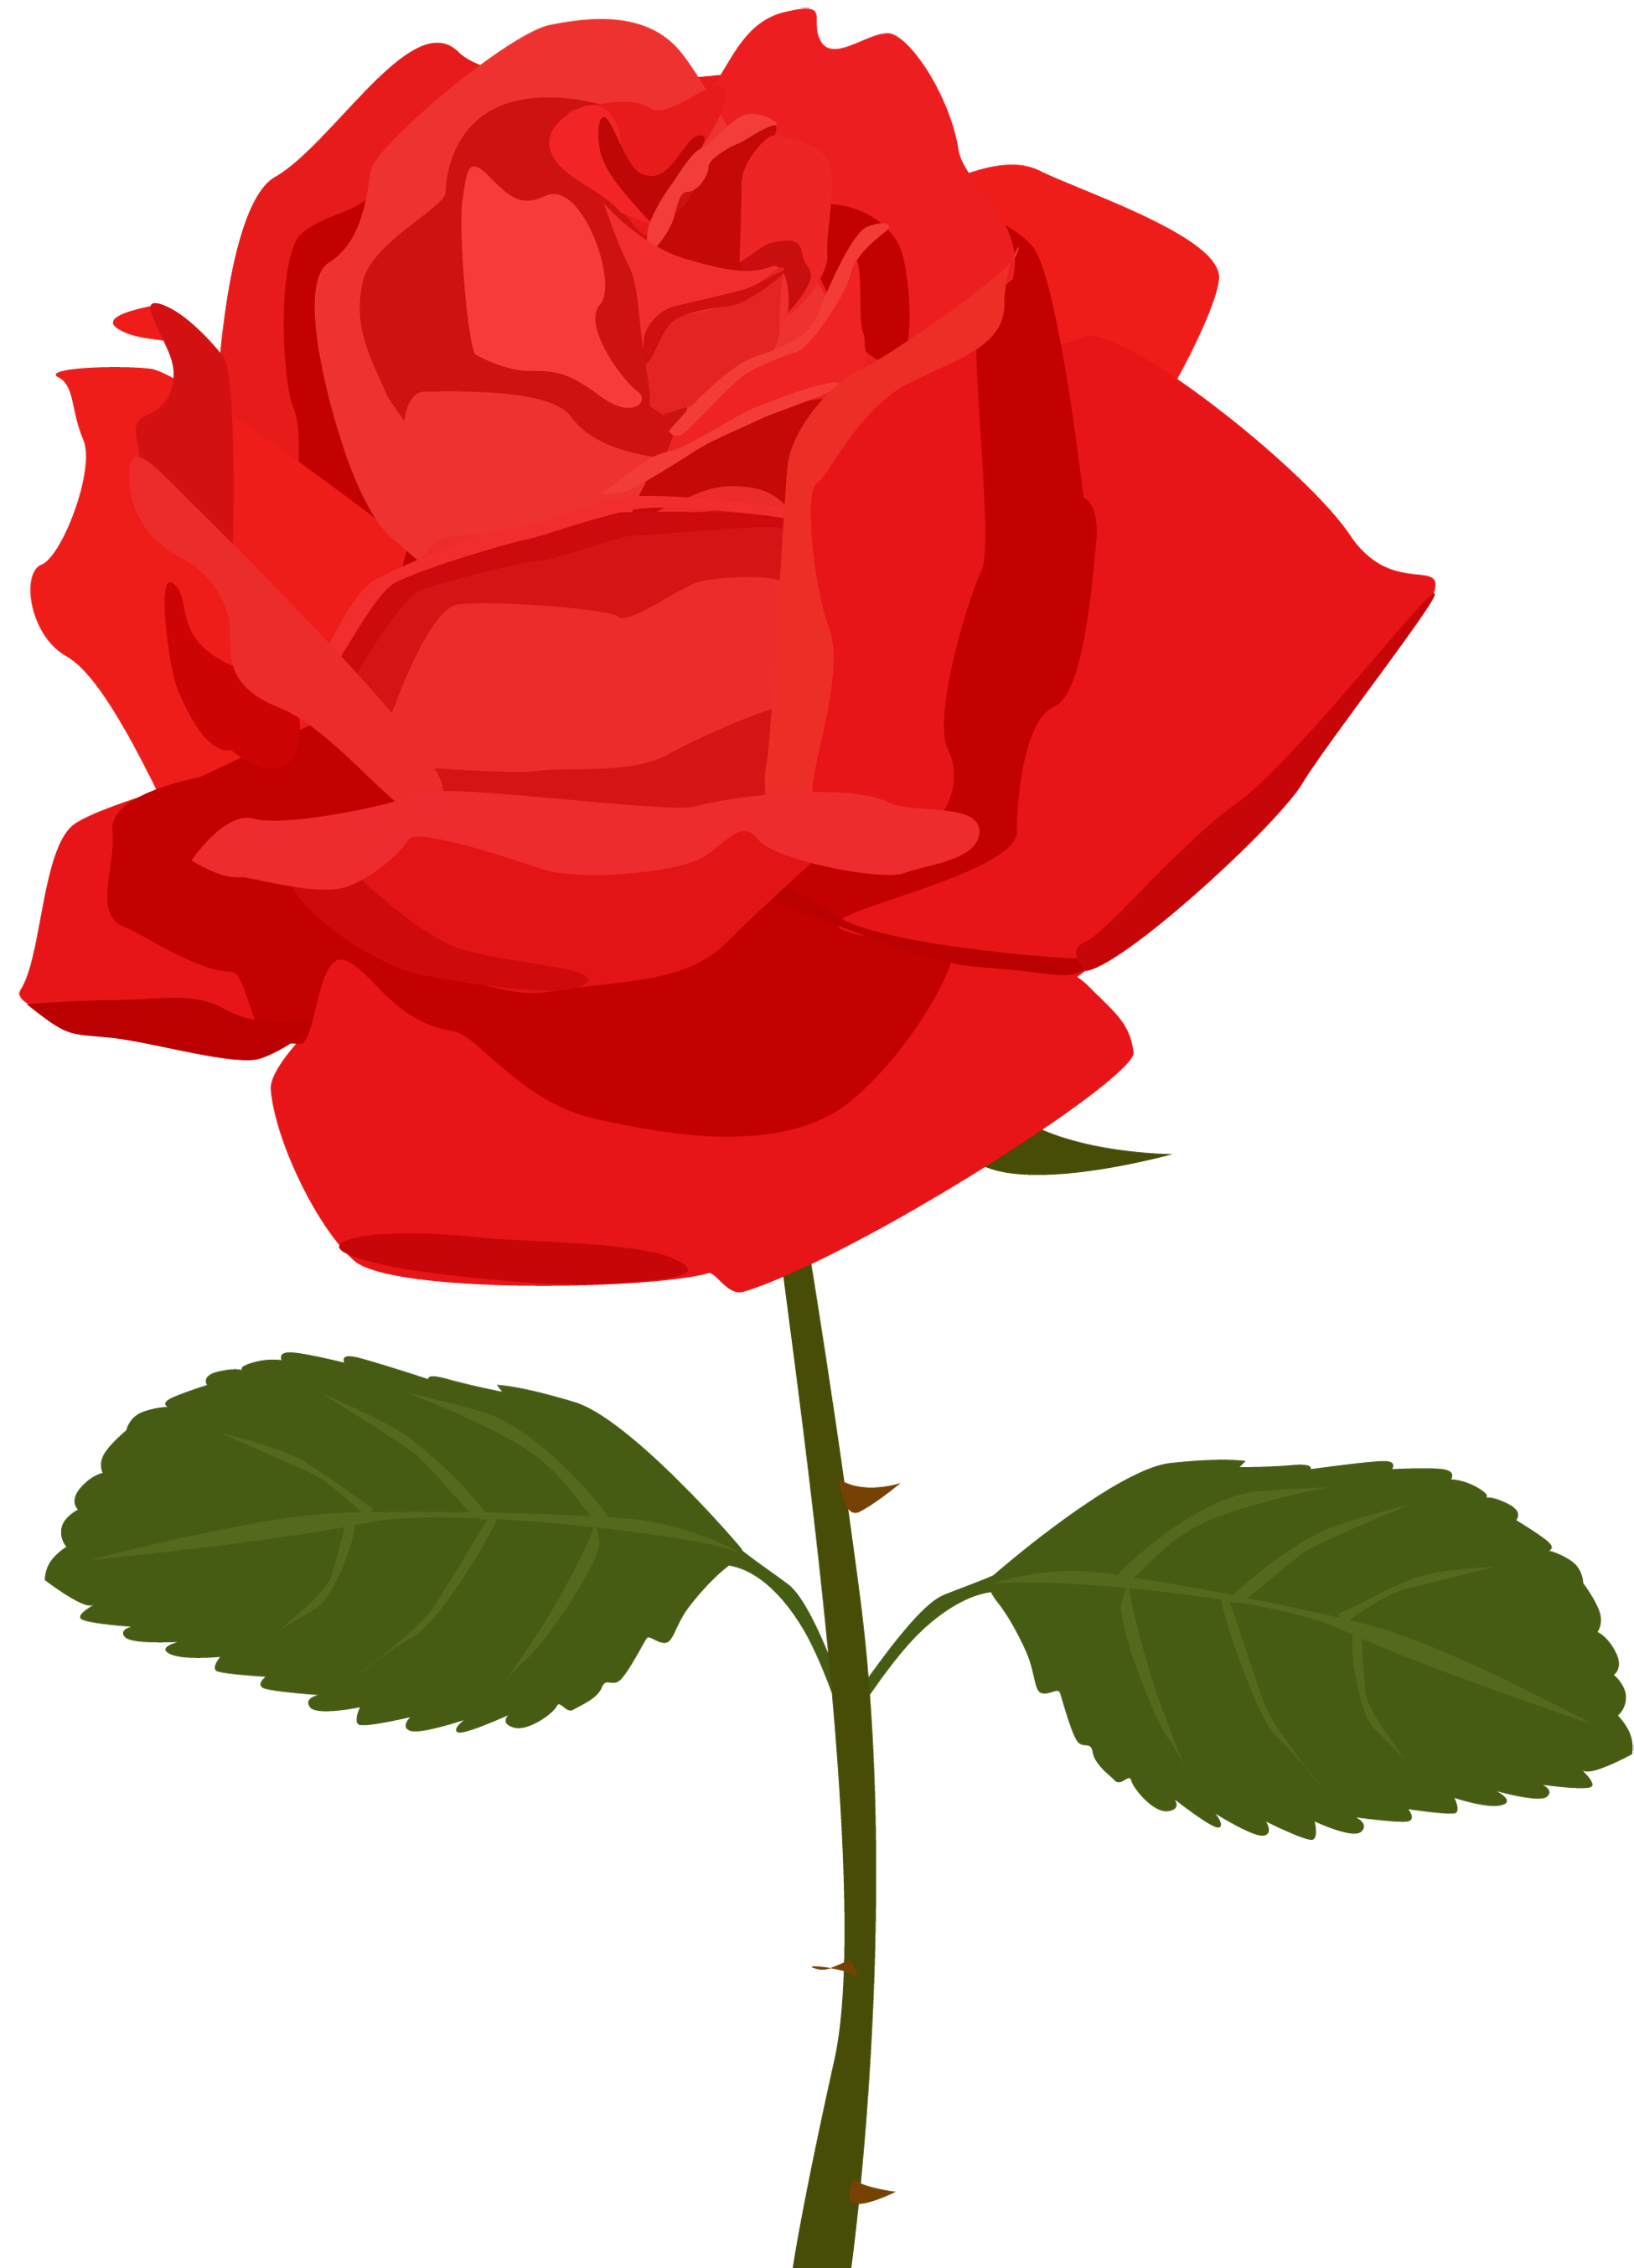 Transparent red png picture. Rose clipart animated